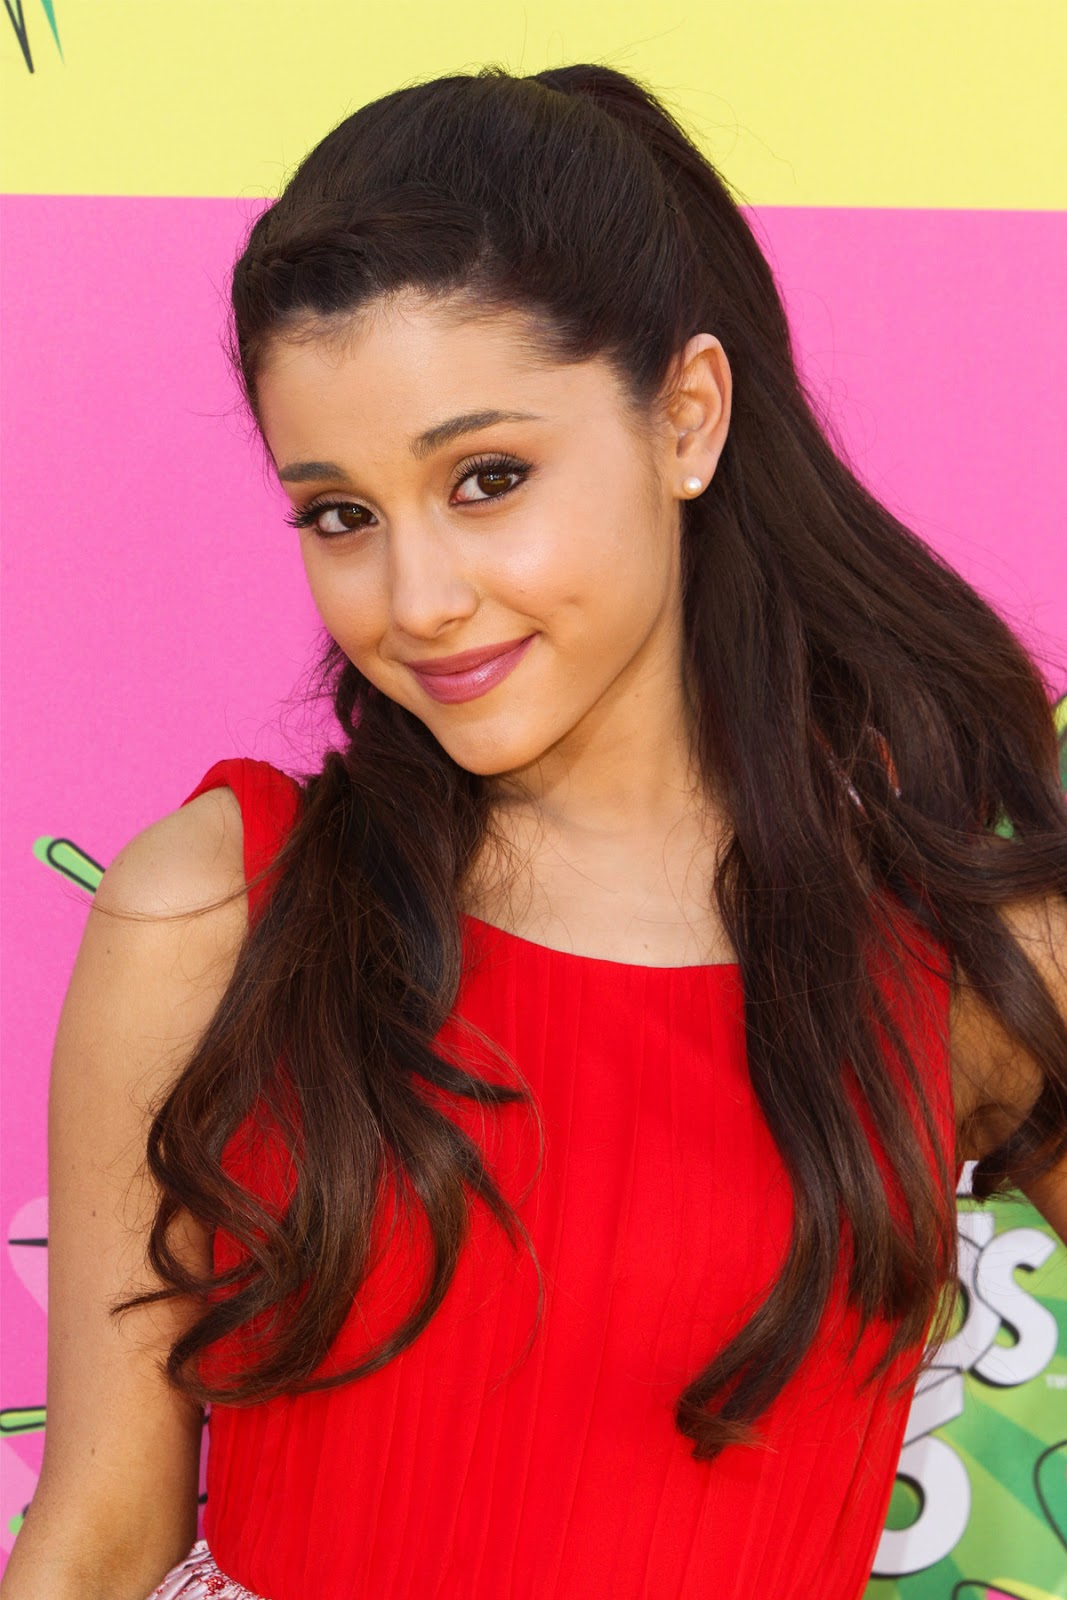 Ariana Grande Hd Wallpapers Hd Wallpapers High